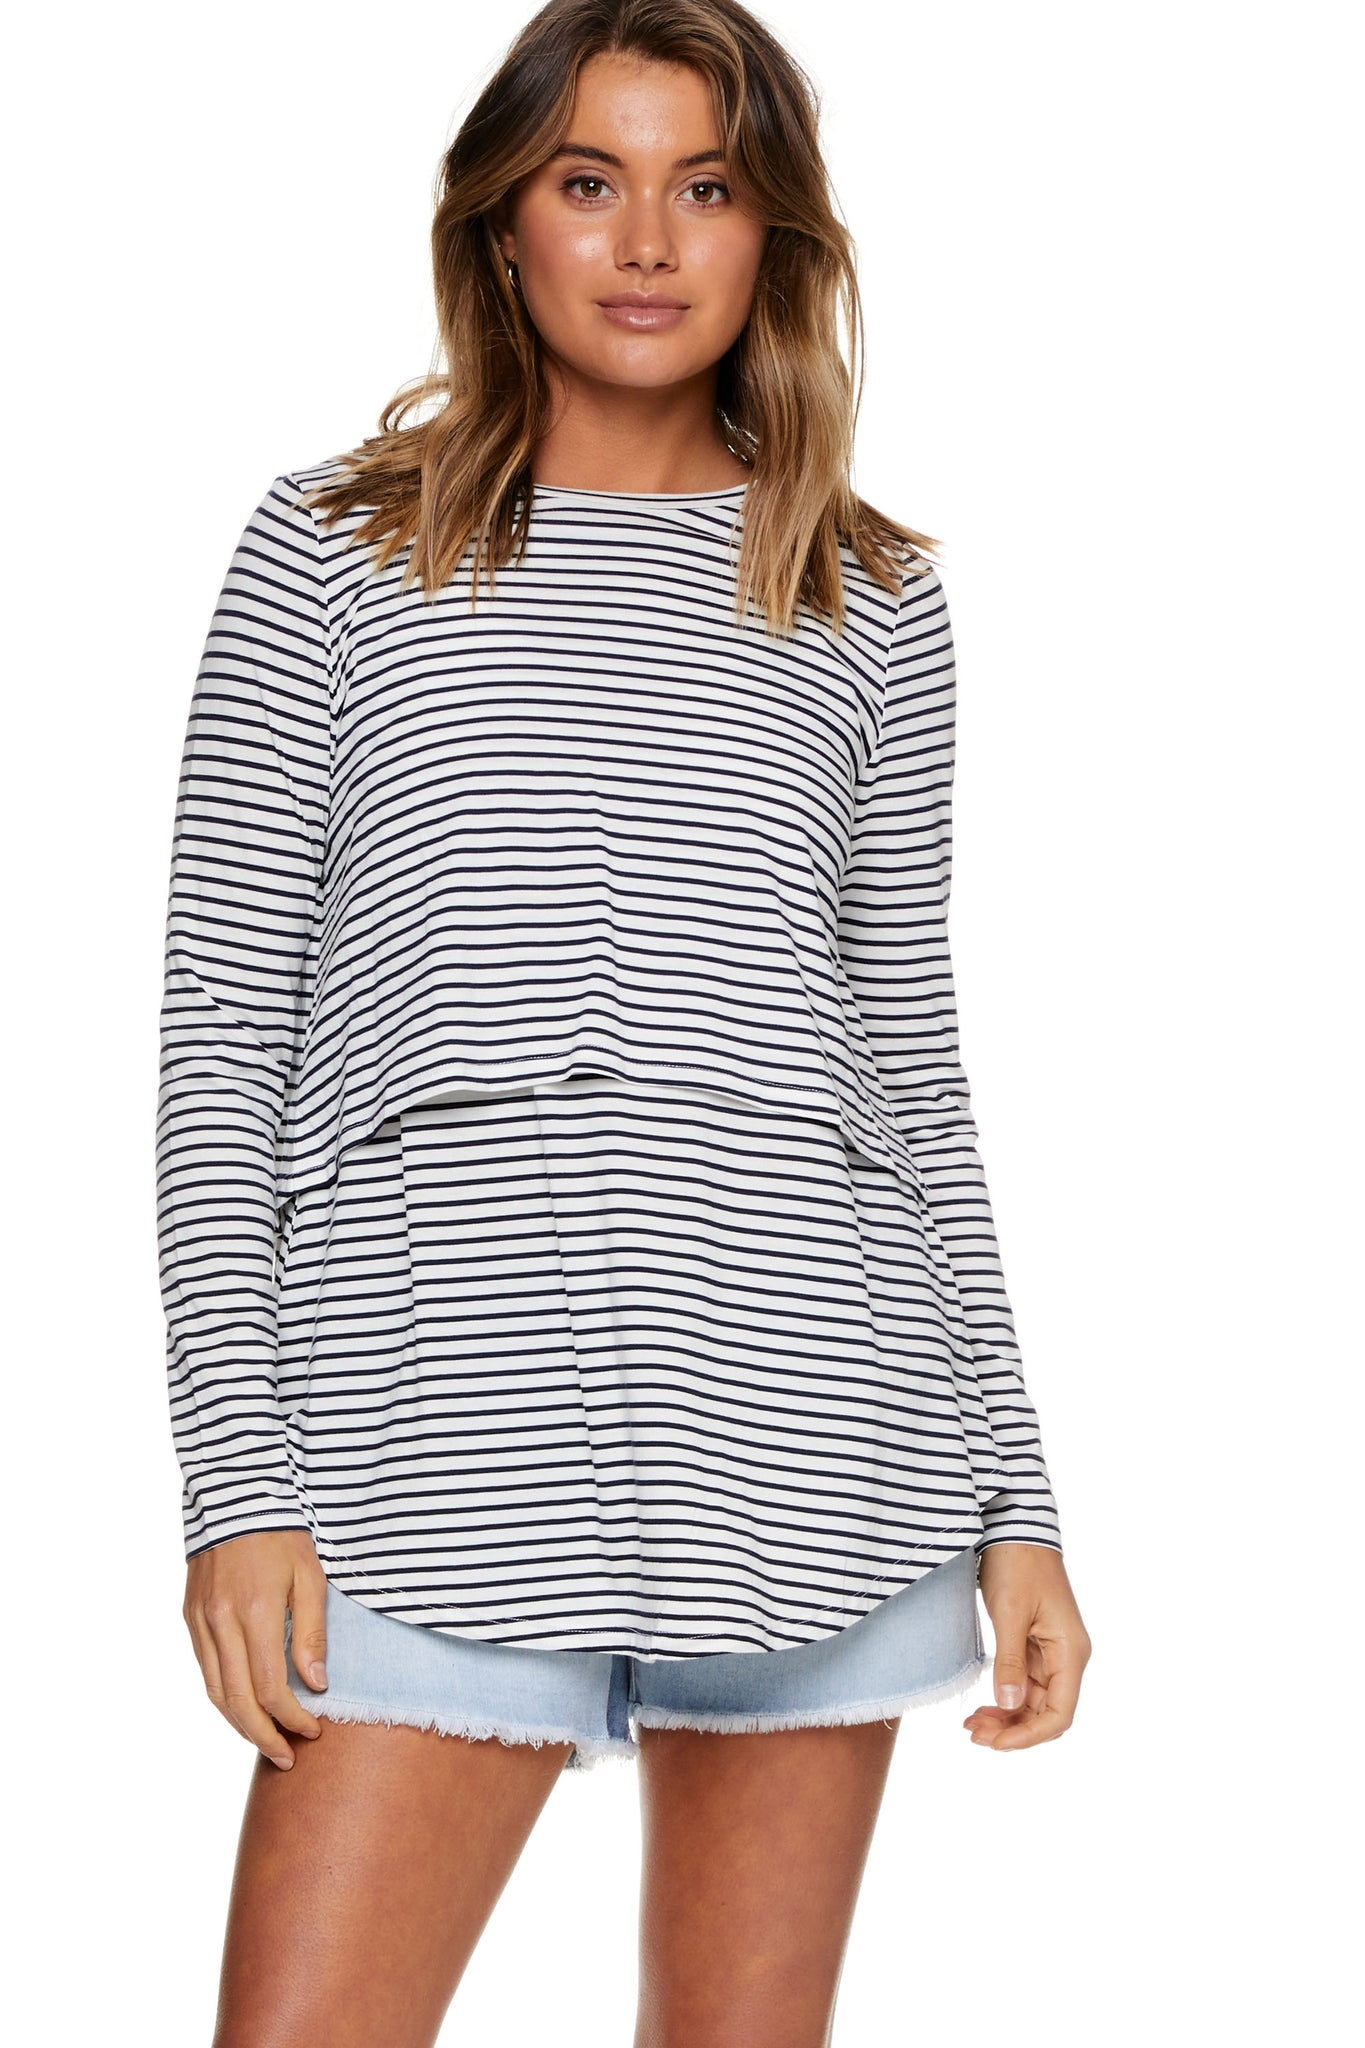 Maternity and Nursing Long Sleeve Top Stripe Image 6